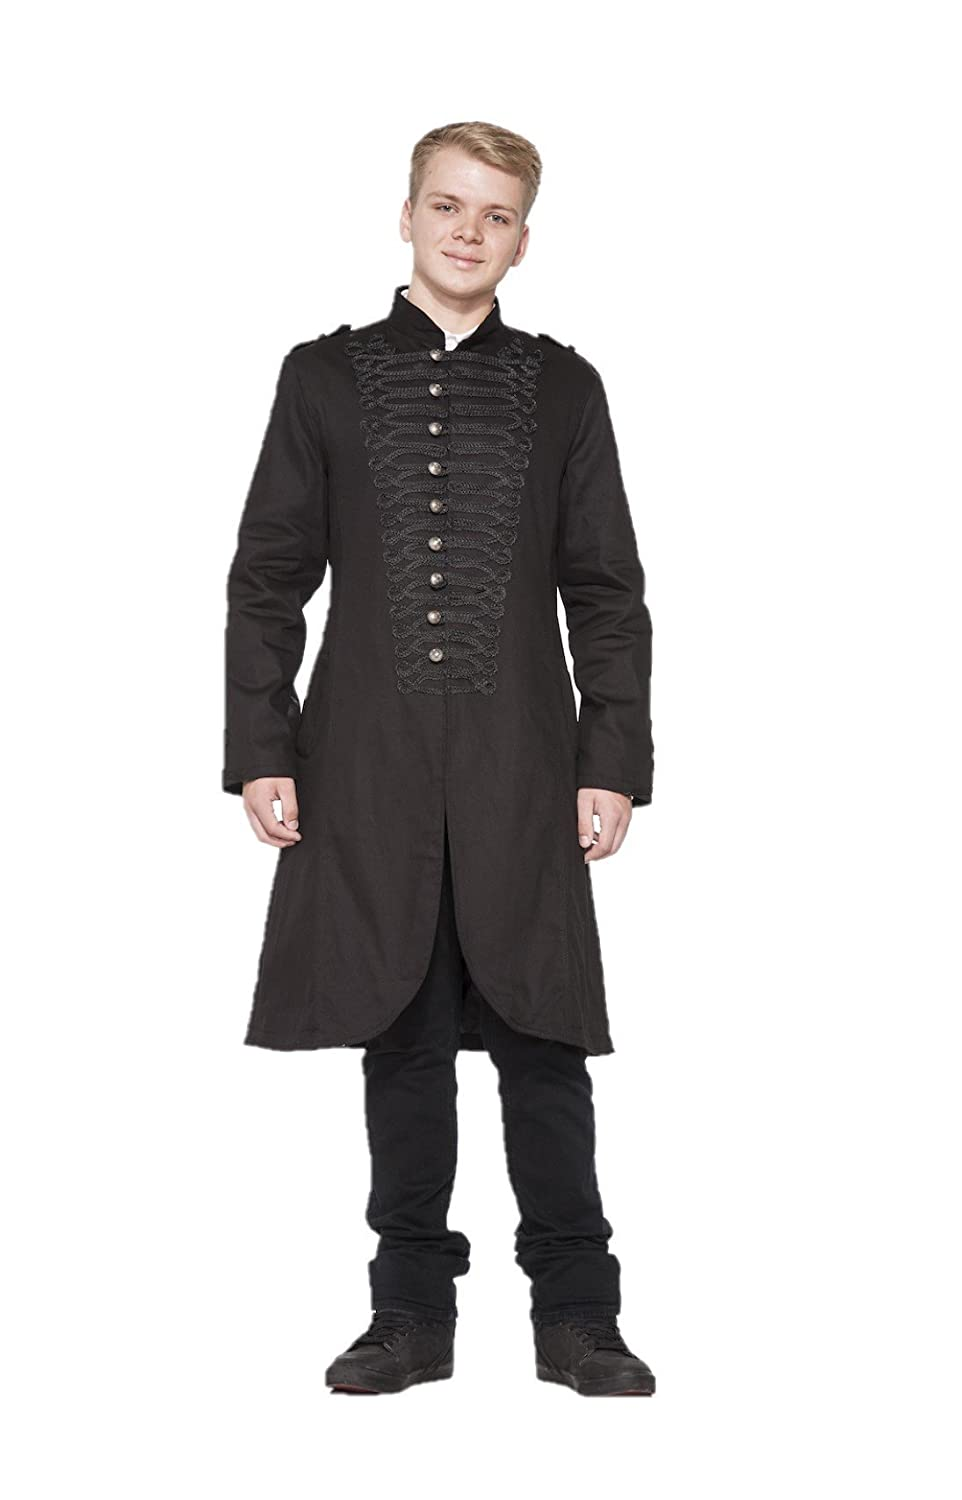 Men's Steampunk Jackets, Coats & Suits Hearts & Roses Military Coat (Shipped from The US and US Sizes) $79.88 AT vintagedancer.com